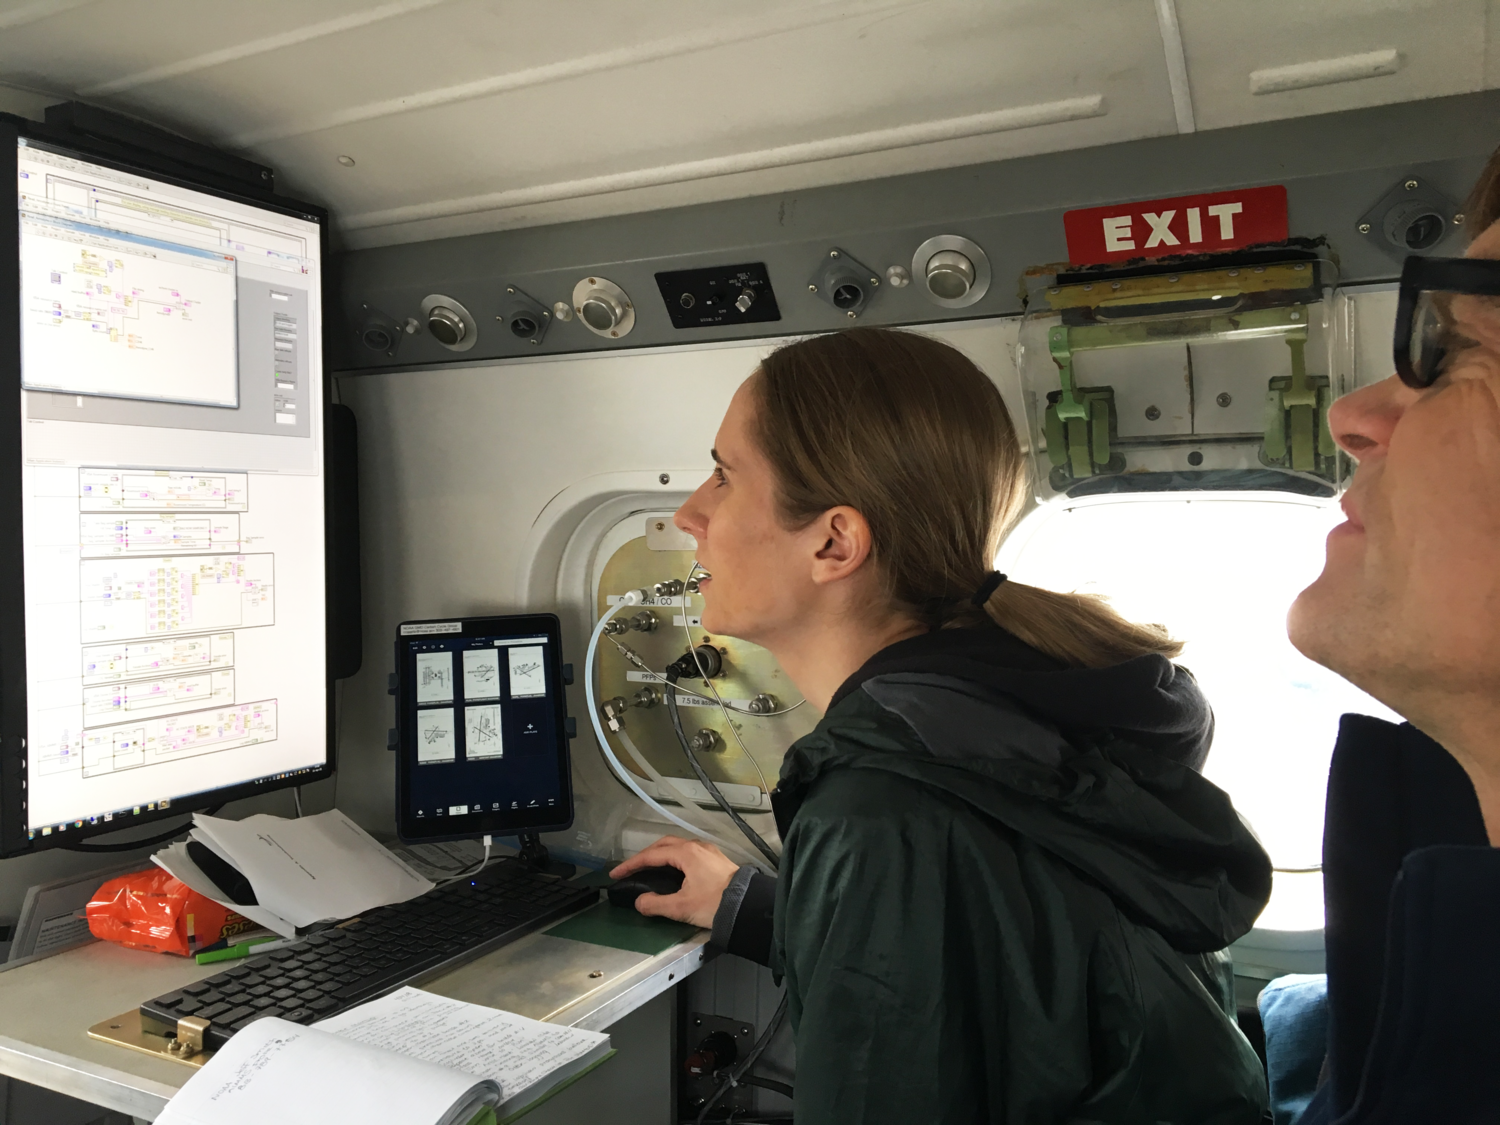 Genevieve Plant and Colm Sweeney review measurements of methane and other gases during an airborne research project in 2018. Image credit: Eric Kort, University of Michigan